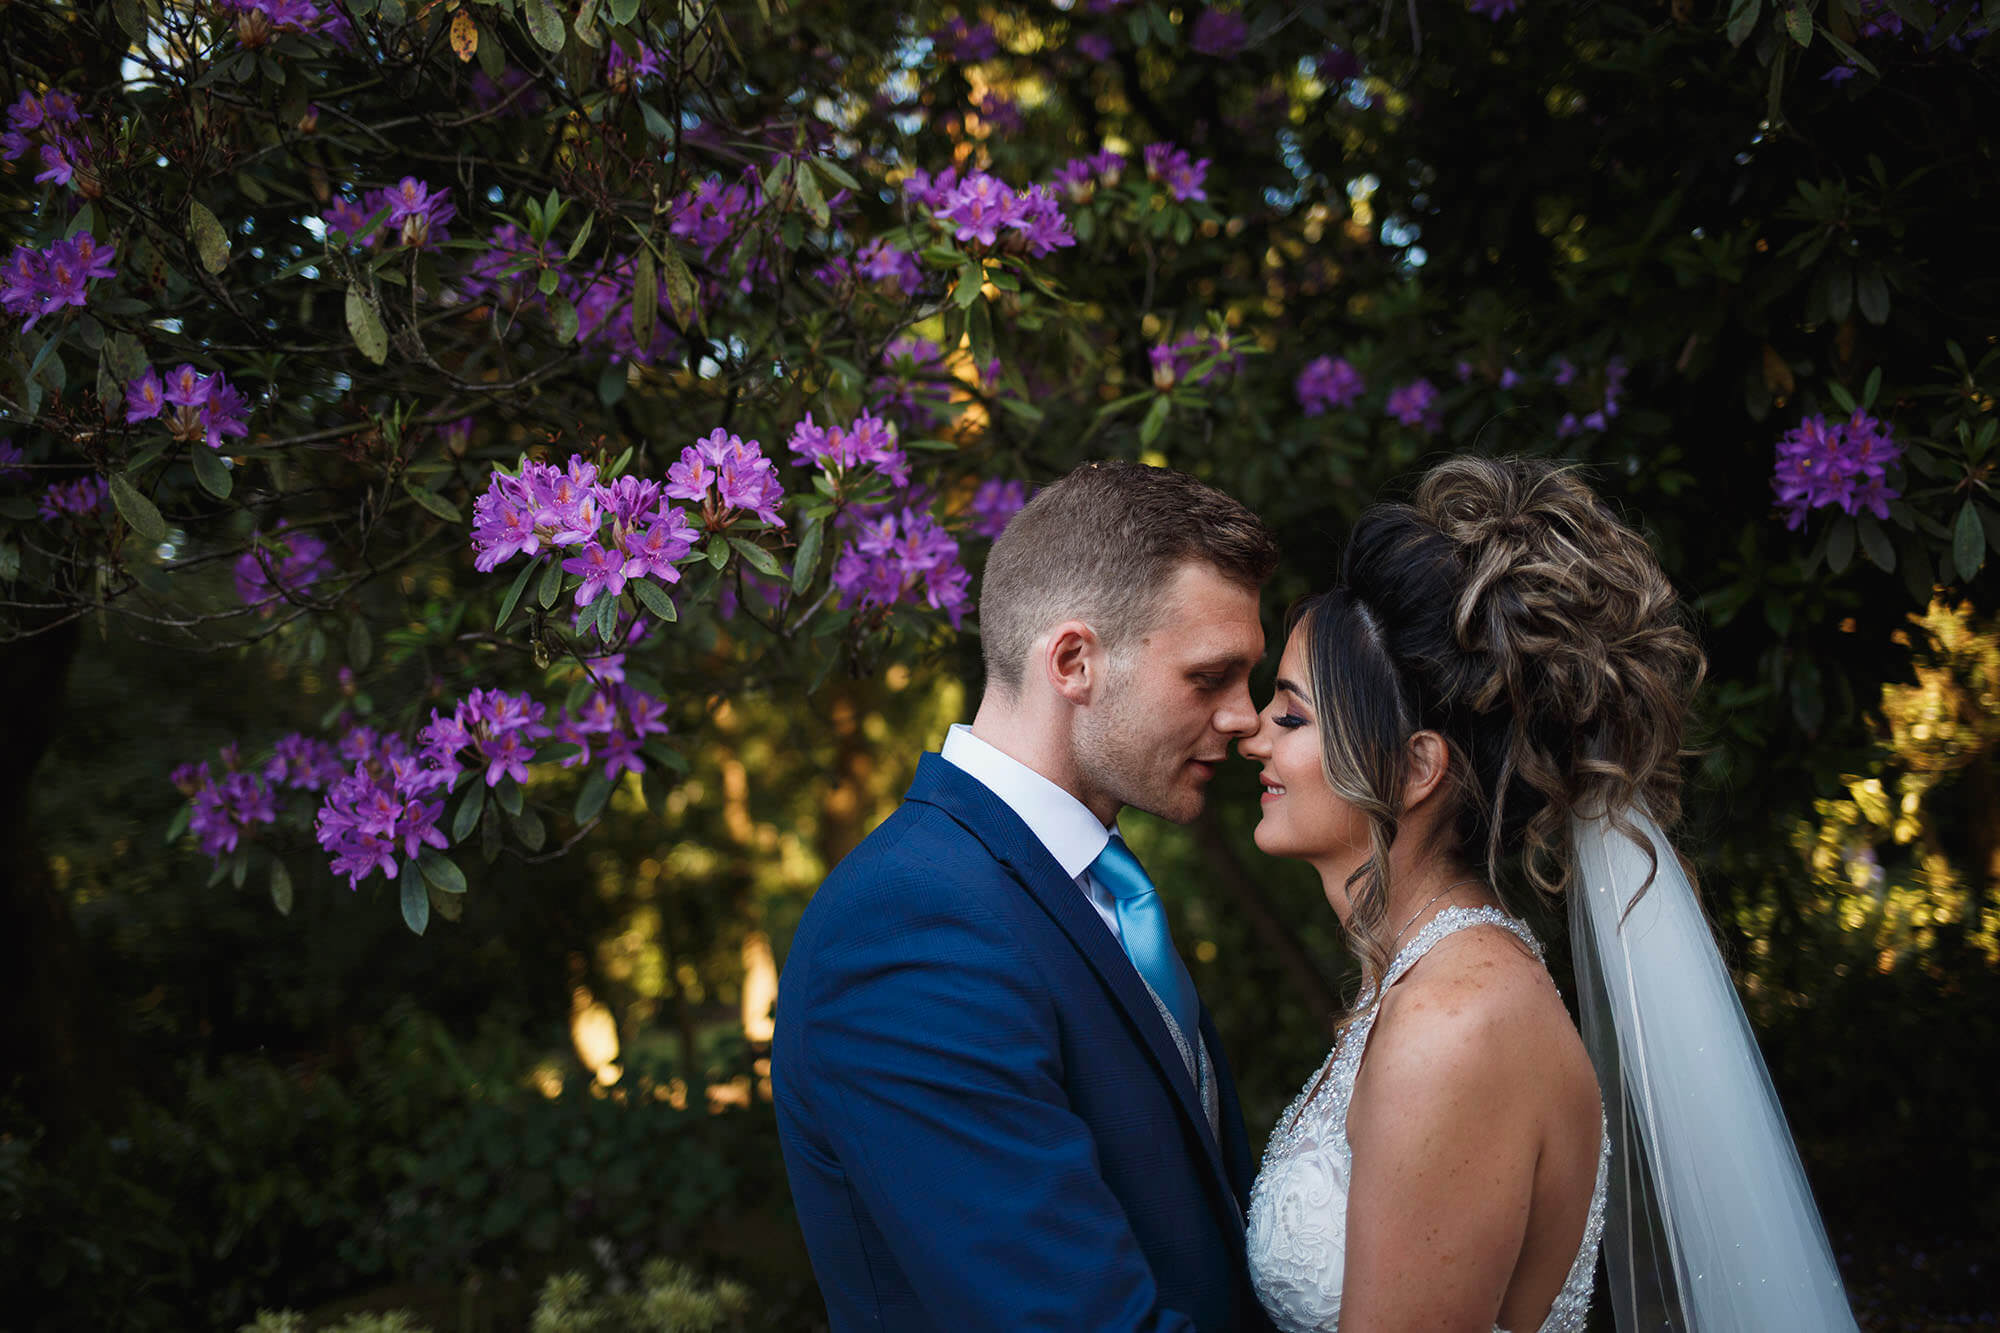 couple kissing near purple flowers